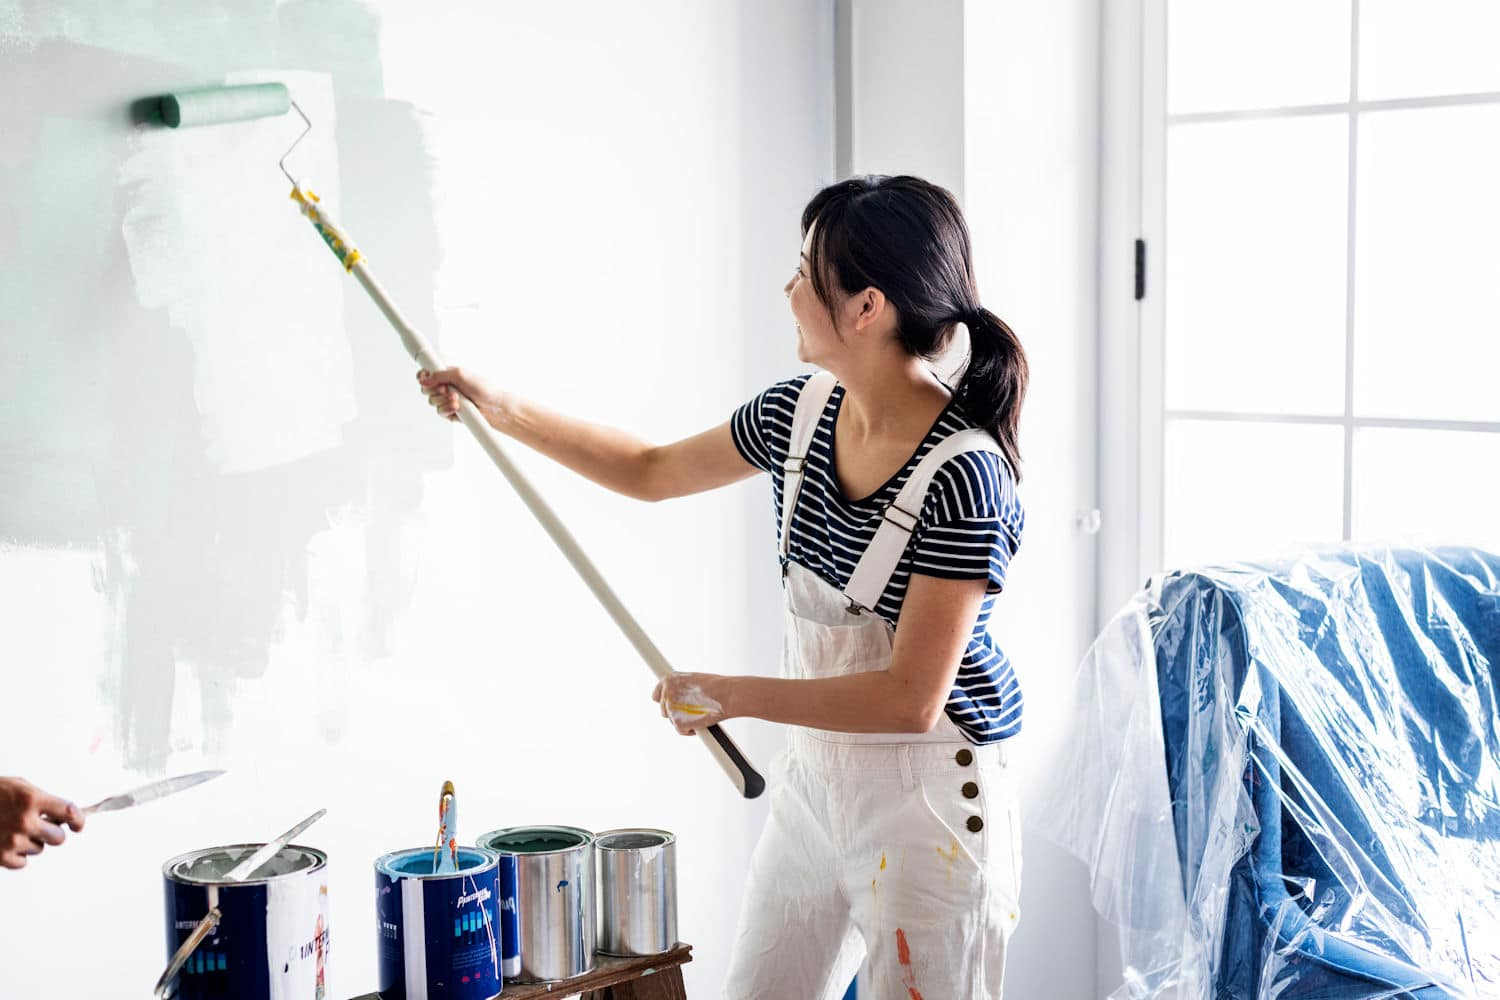 woman painting with roller